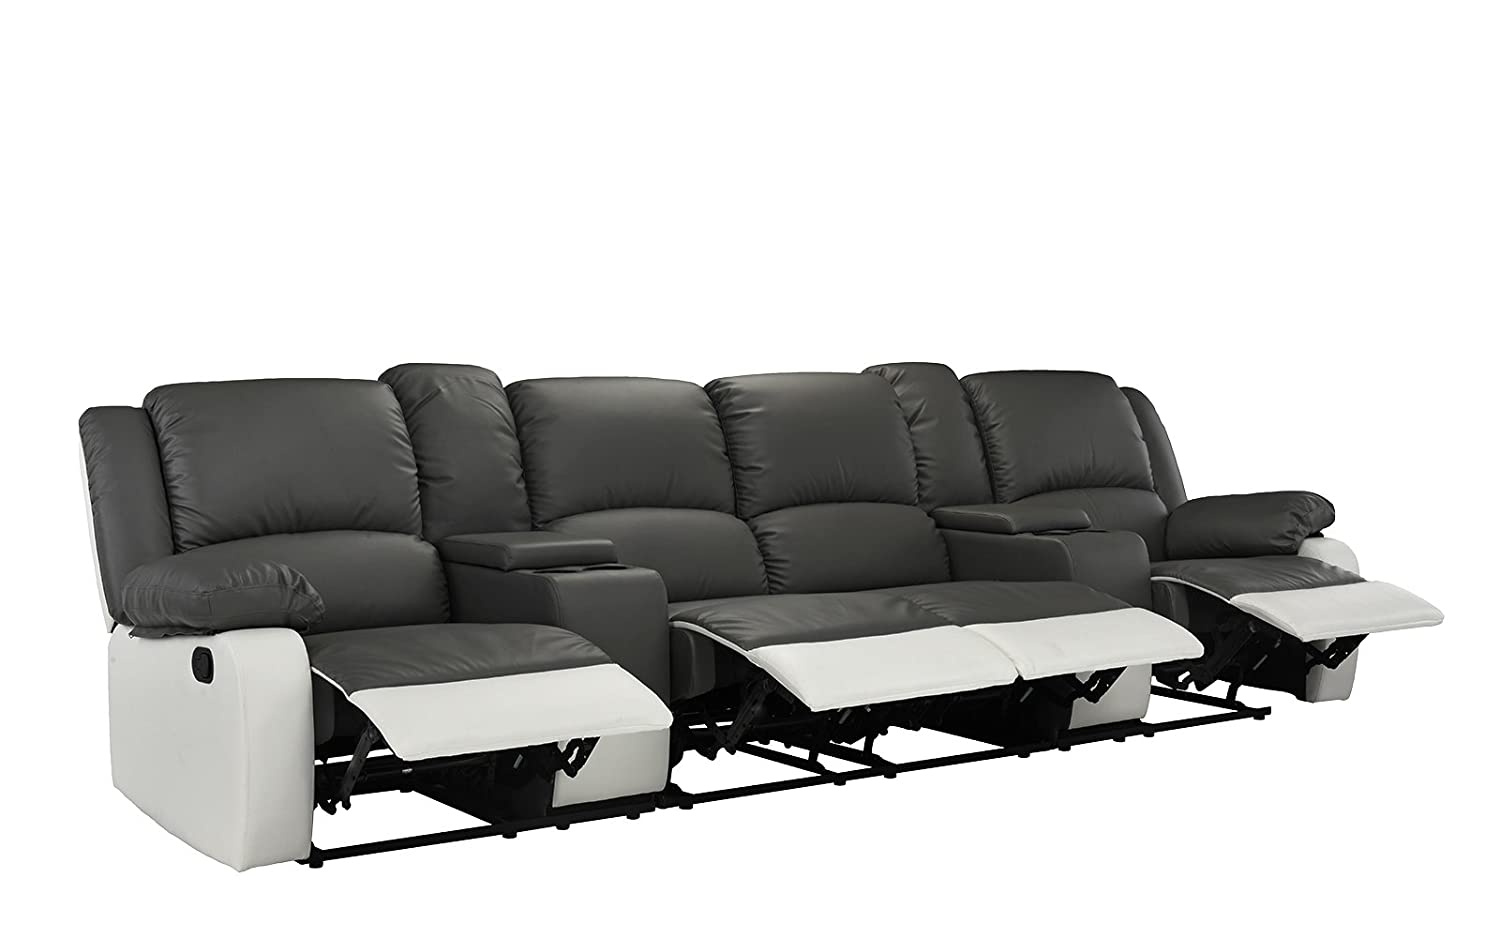 Super 4 Seat Large Classic Recliner Sofa With Cup Holders Home Theater Recliner Couch Grey Andrewgaddart Wooden Chair Designs For Living Room Andrewgaddartcom